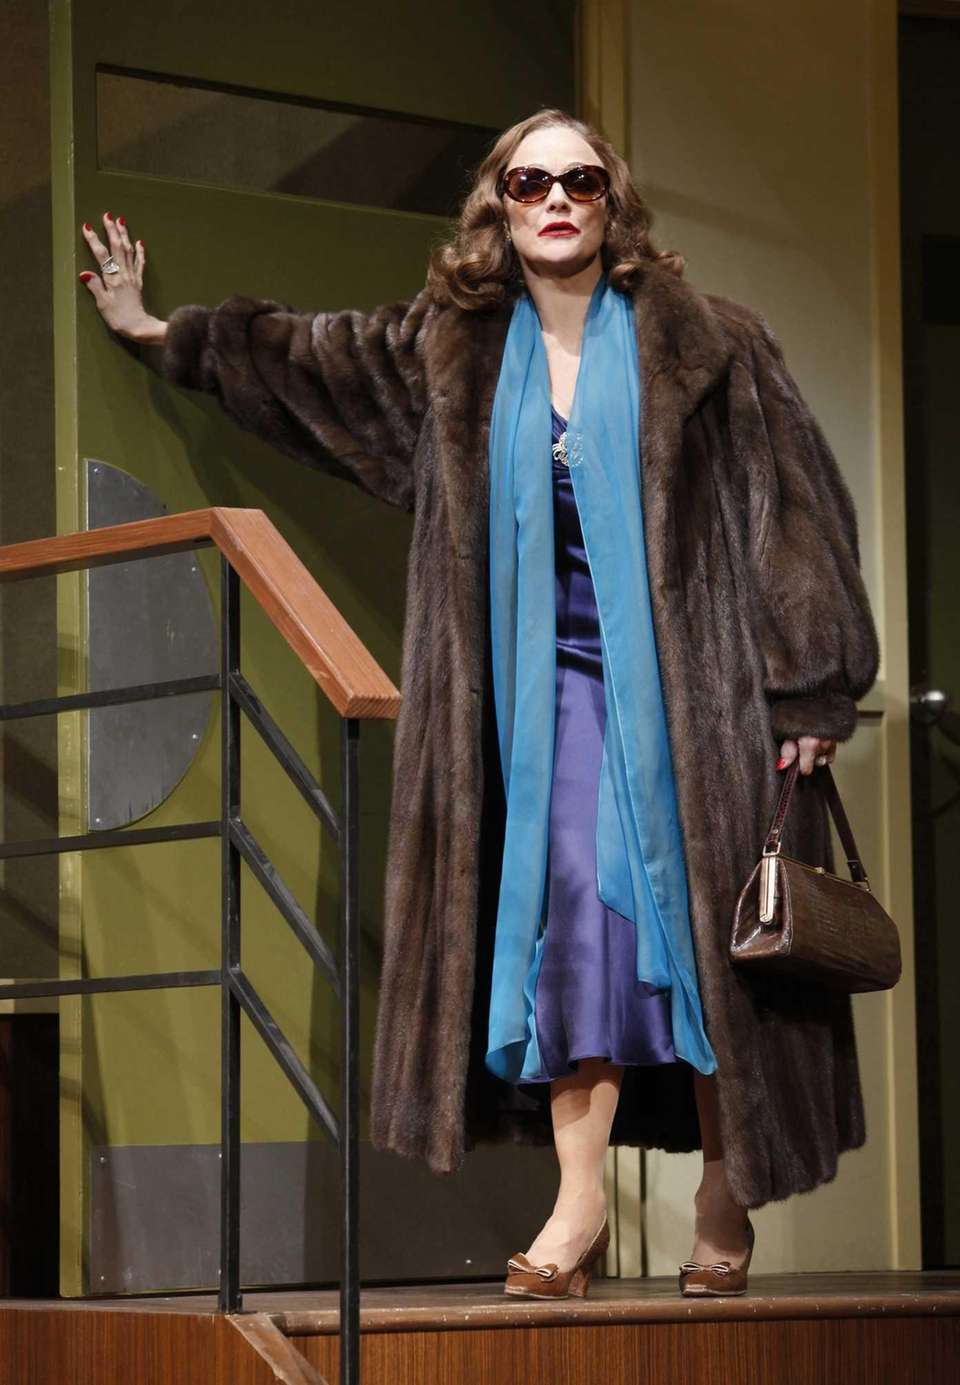 Valerie Harper played Tallulah Bankhead in Matthew Lombardo's